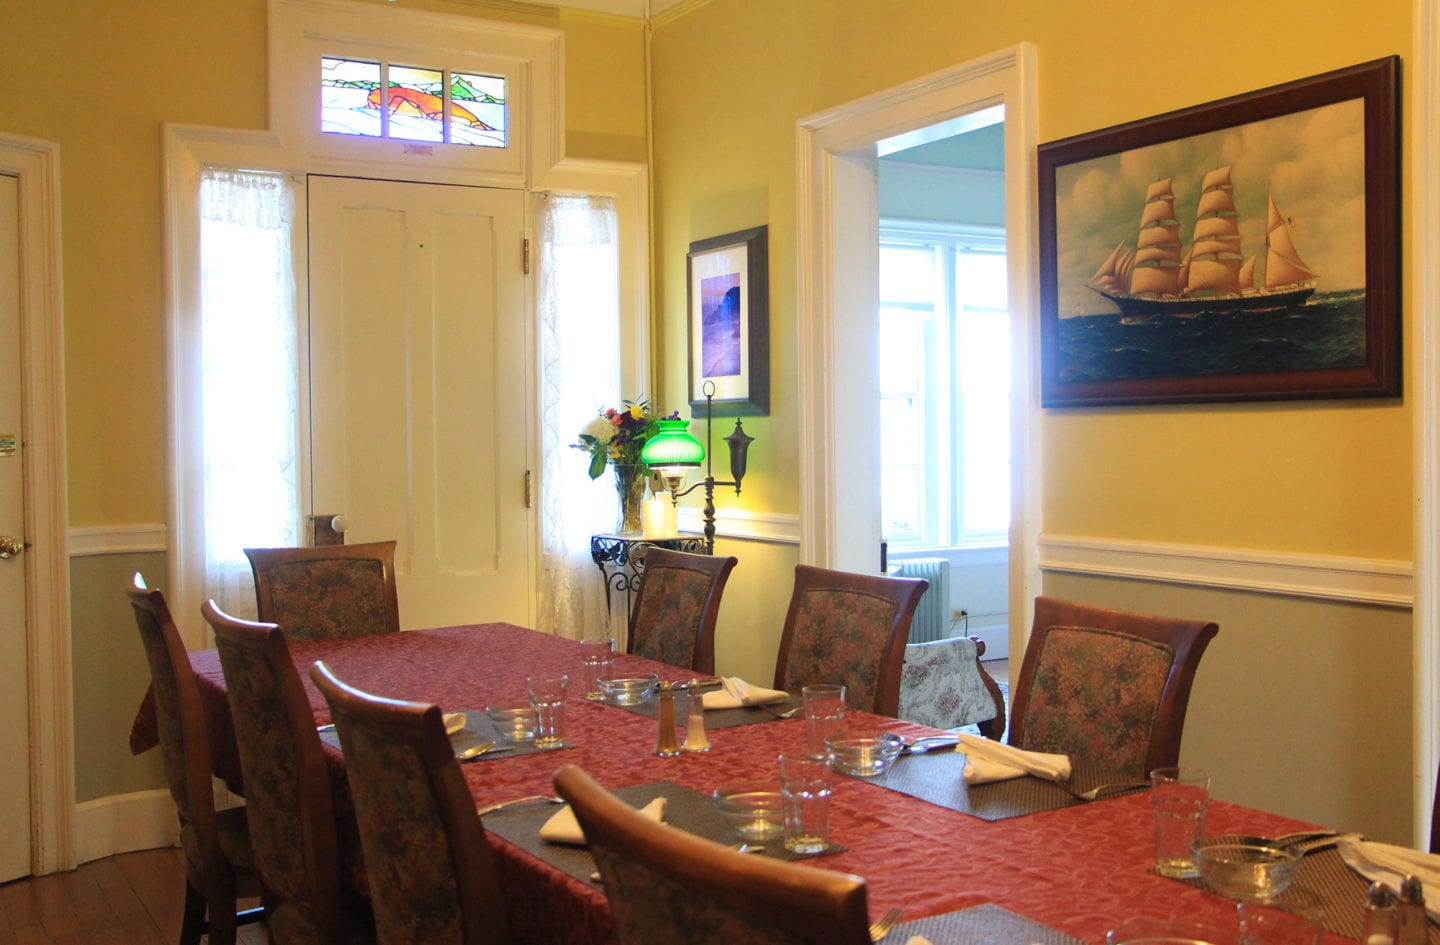 Dining room at East Brother Light Station